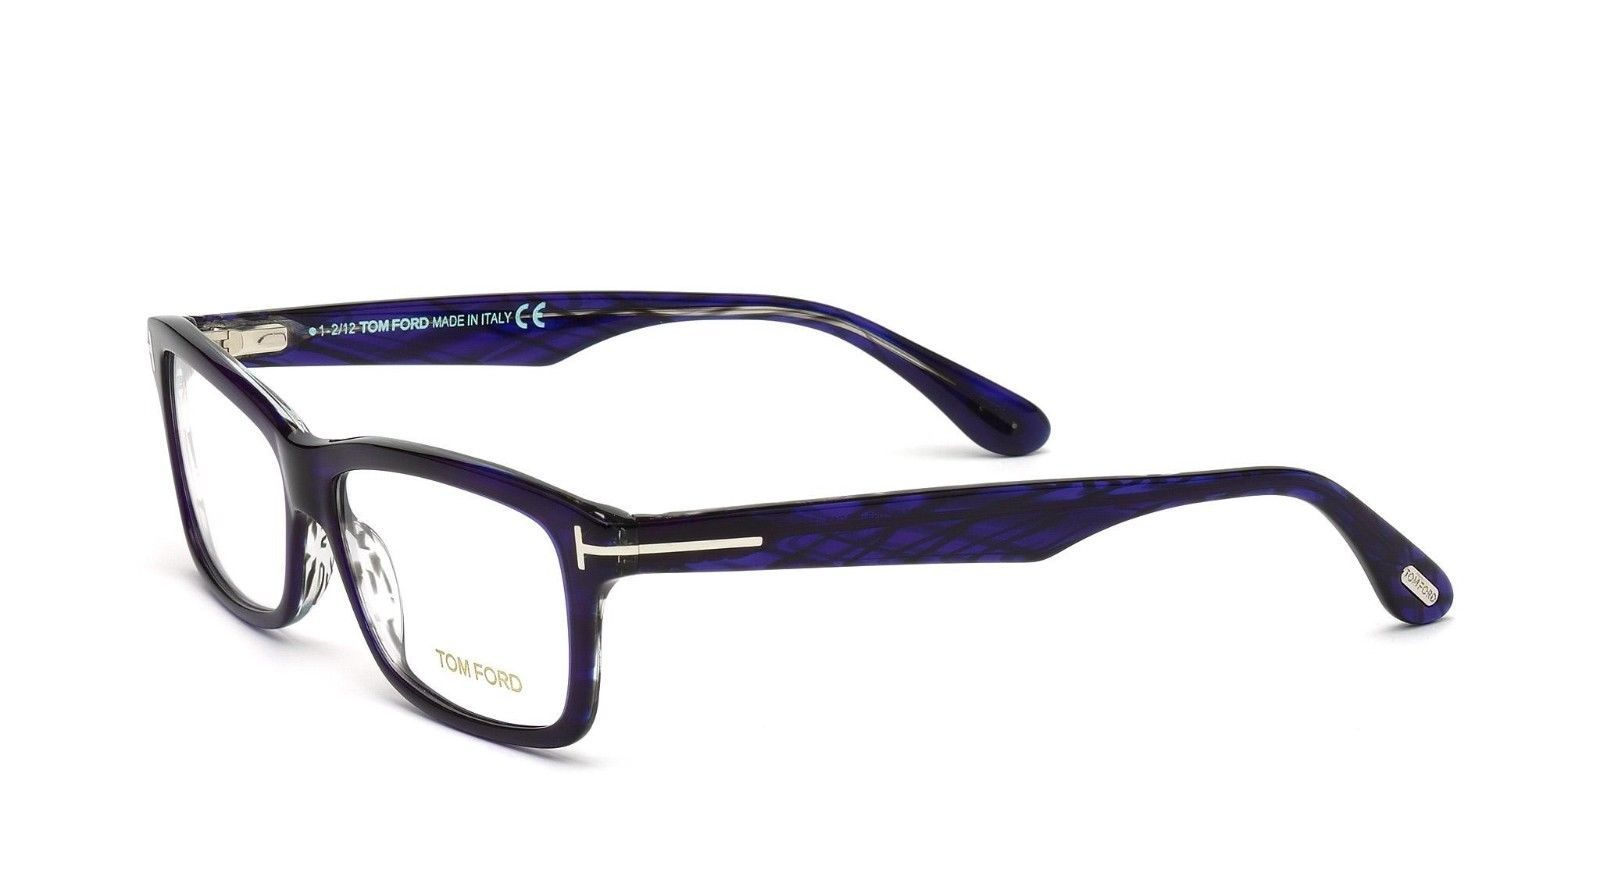 Frame Glasses Made In Italy : Tom Ford FT 5146 083 Violet Acetate Full-frame Eyeglasses ...